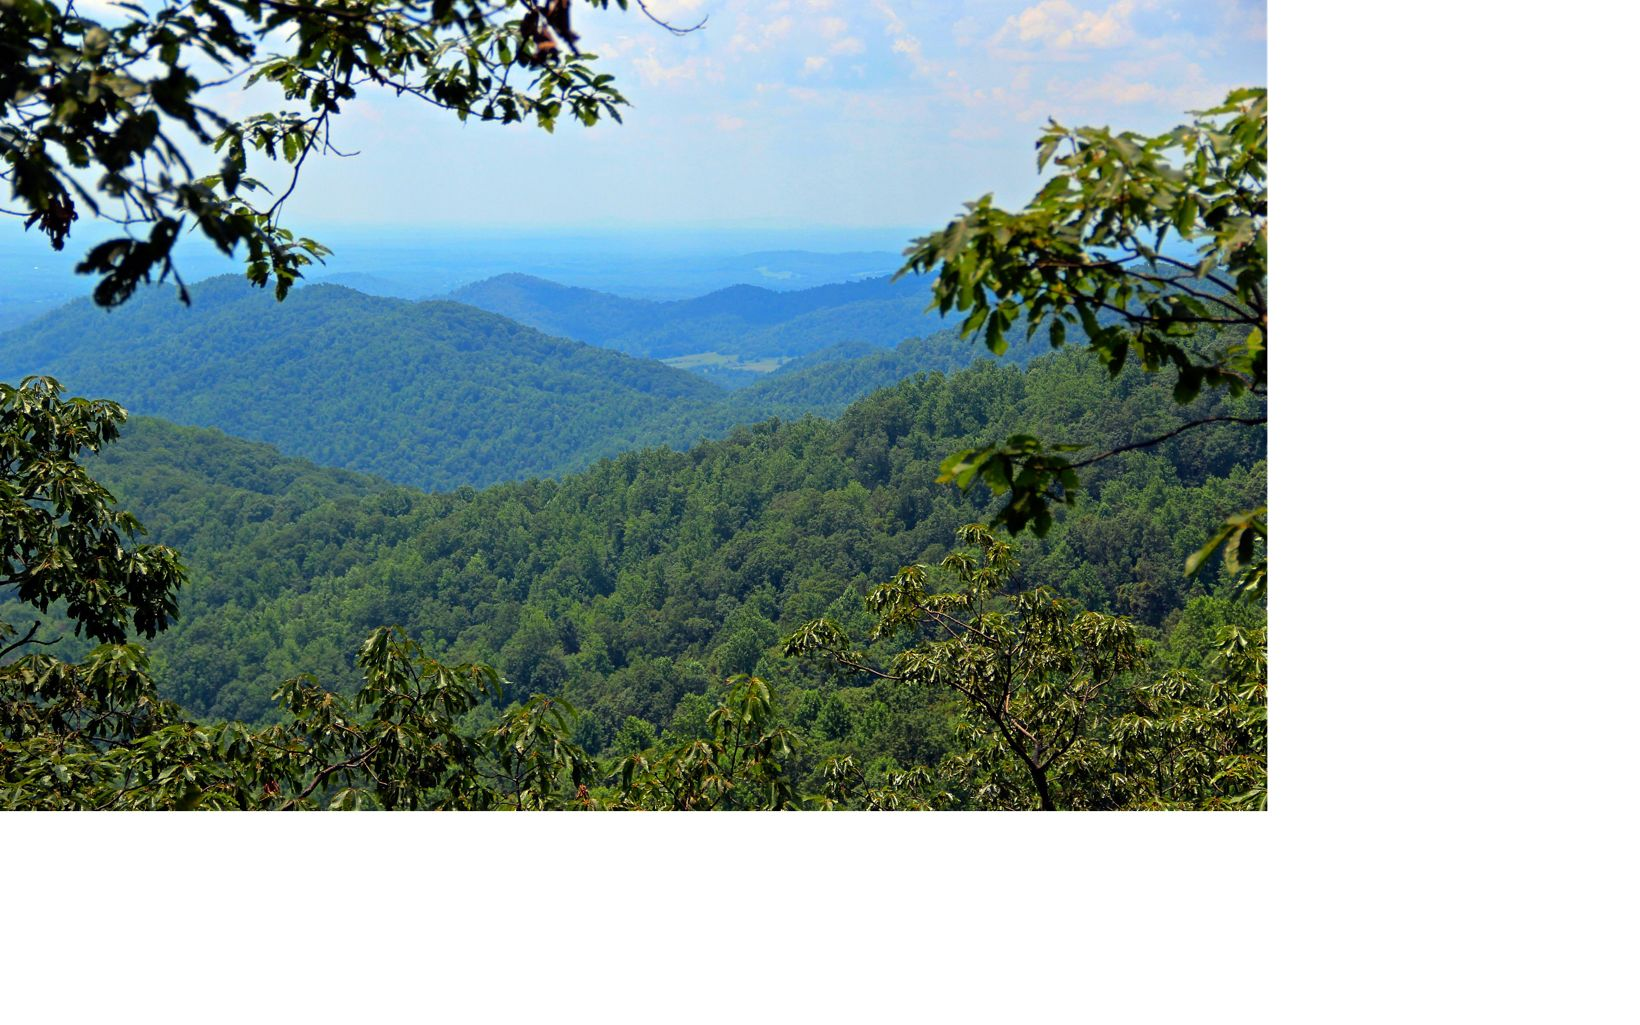 A challenging hike rewards visitors with stunning mountain vistas.